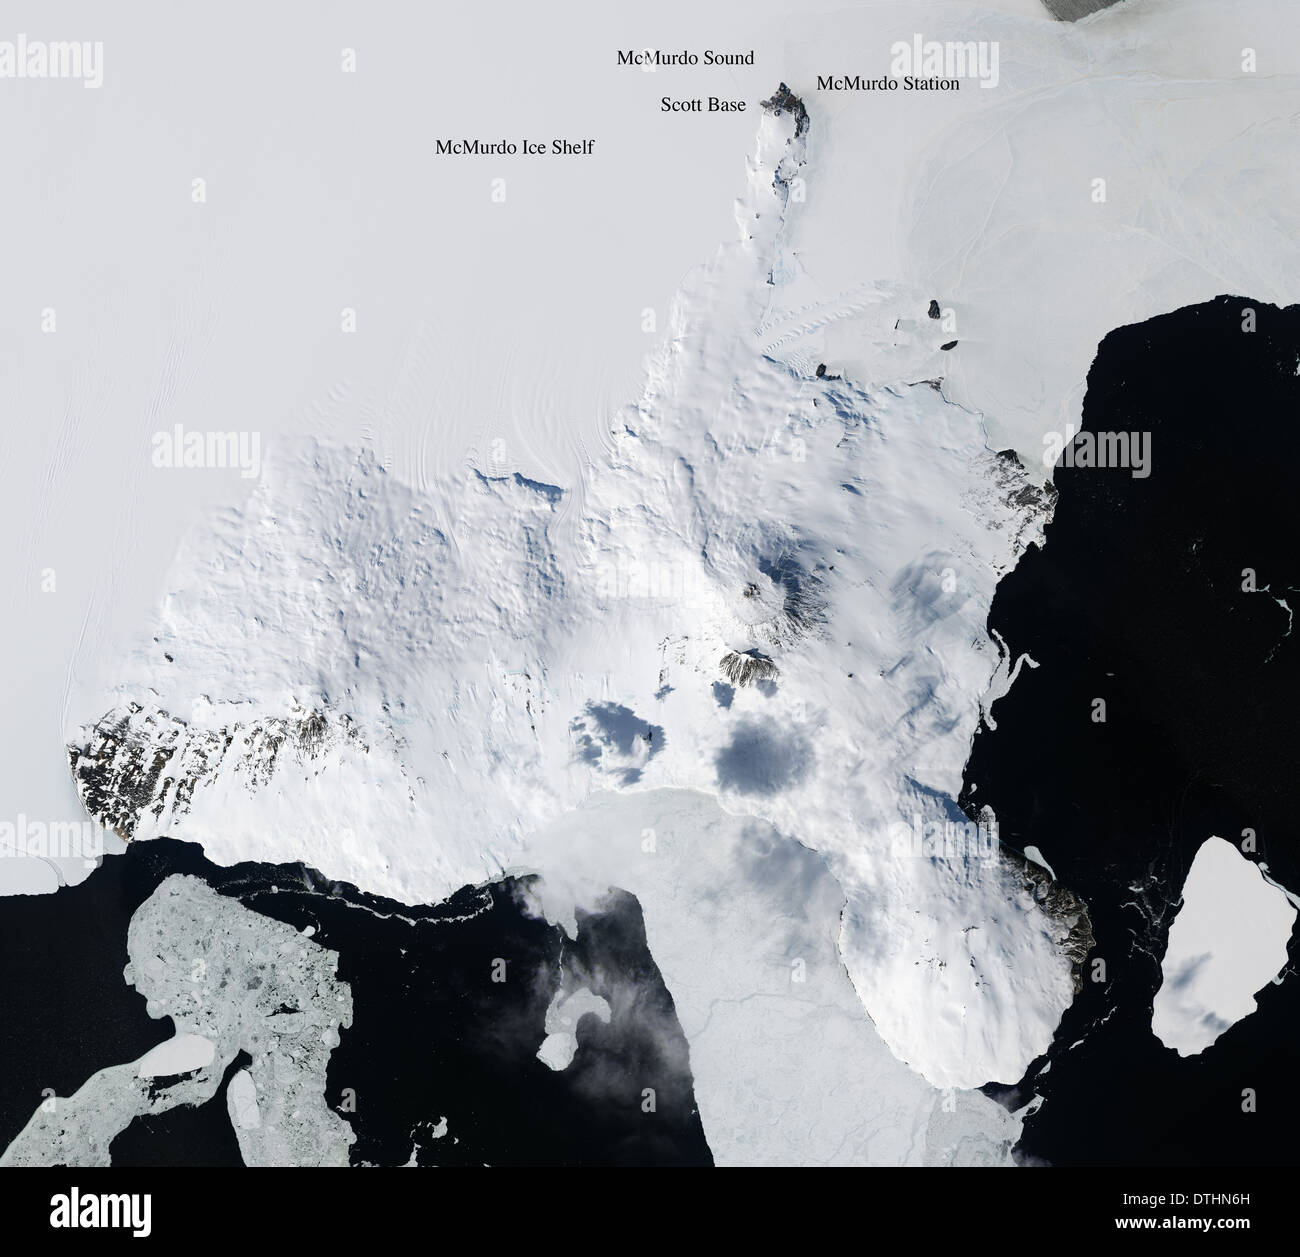 McMurdo Station McMurdo Sound and Ice Shelf Antarctica - Stock Image